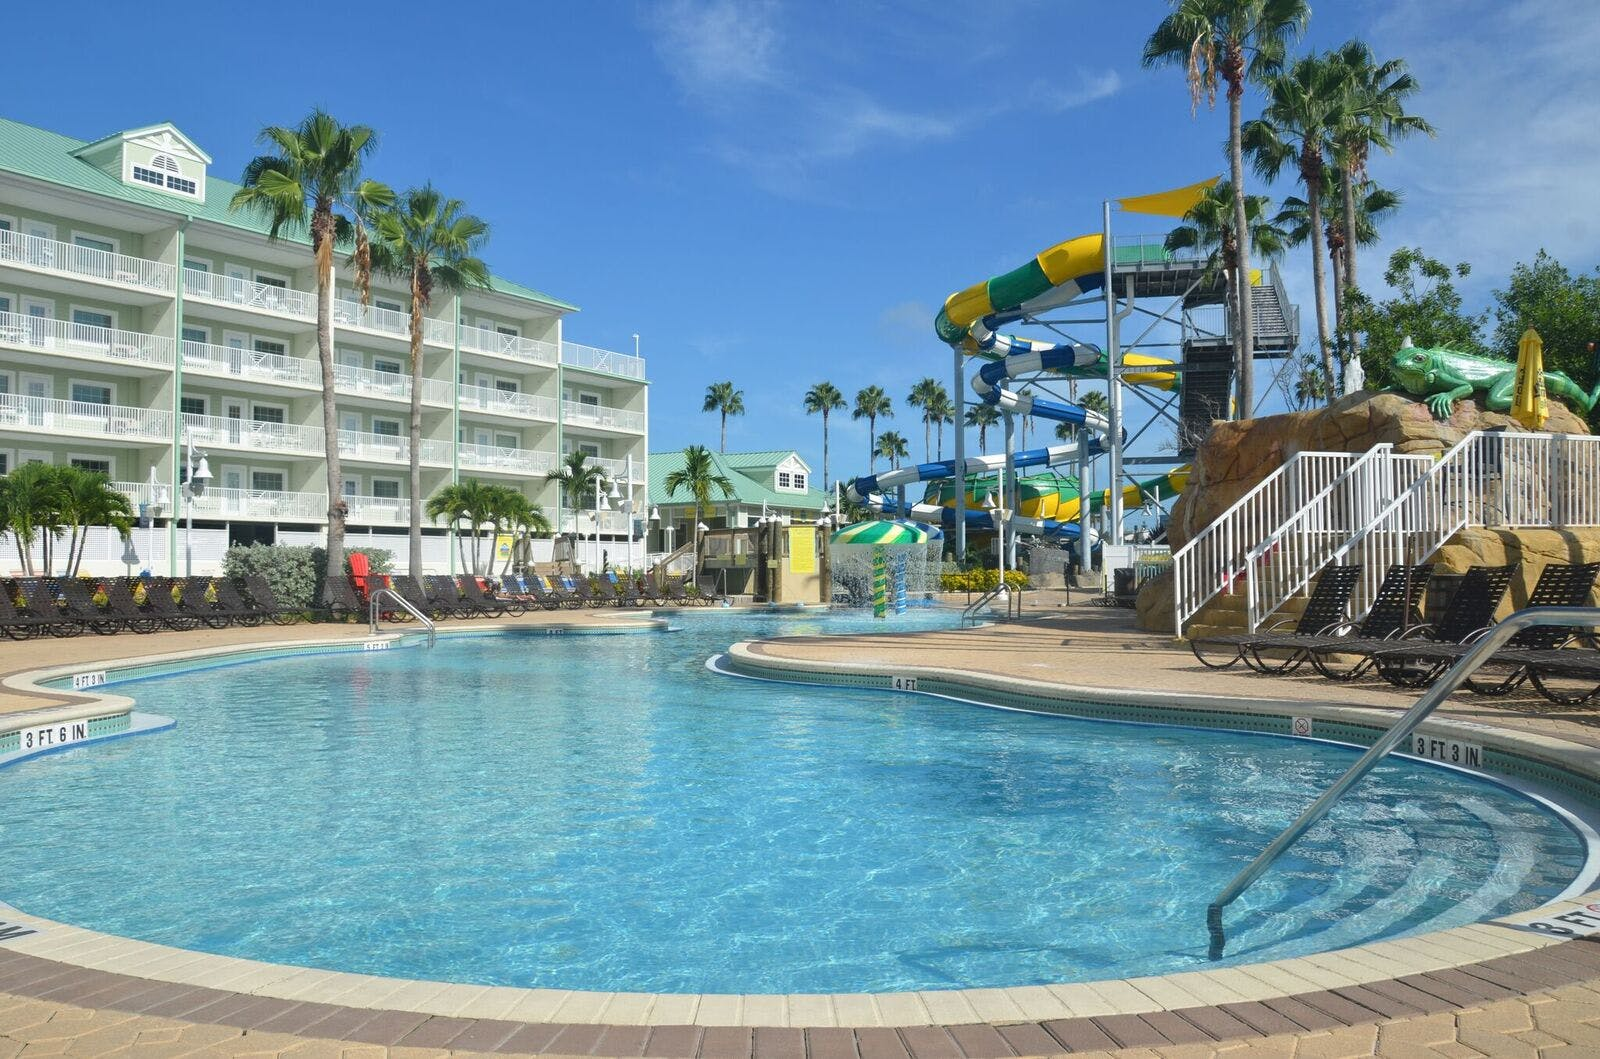 Harbourside At Marker 33, Indian Rocks Beach, 1 or 2 bedroom Condos. Waterpark. Waterslides.